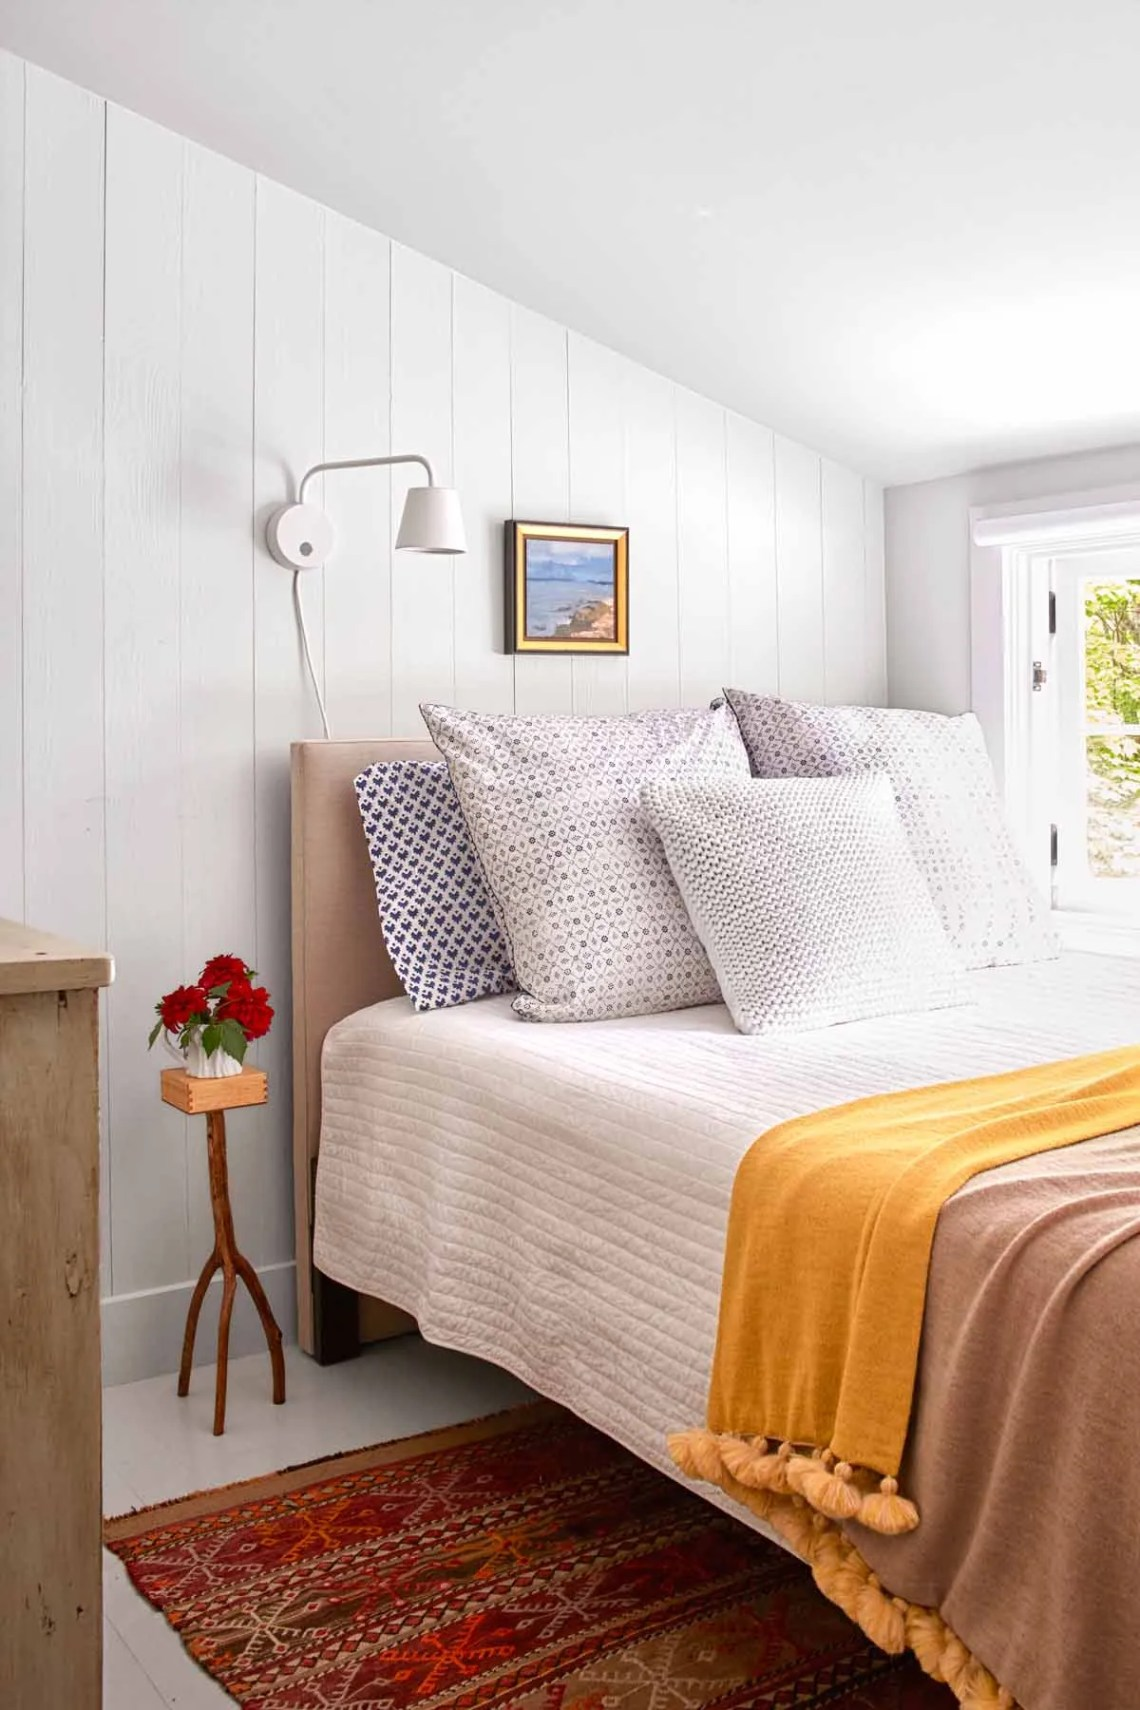 30+ Guest Bedroom Pictures - Decor Ideas for Guest Rooms